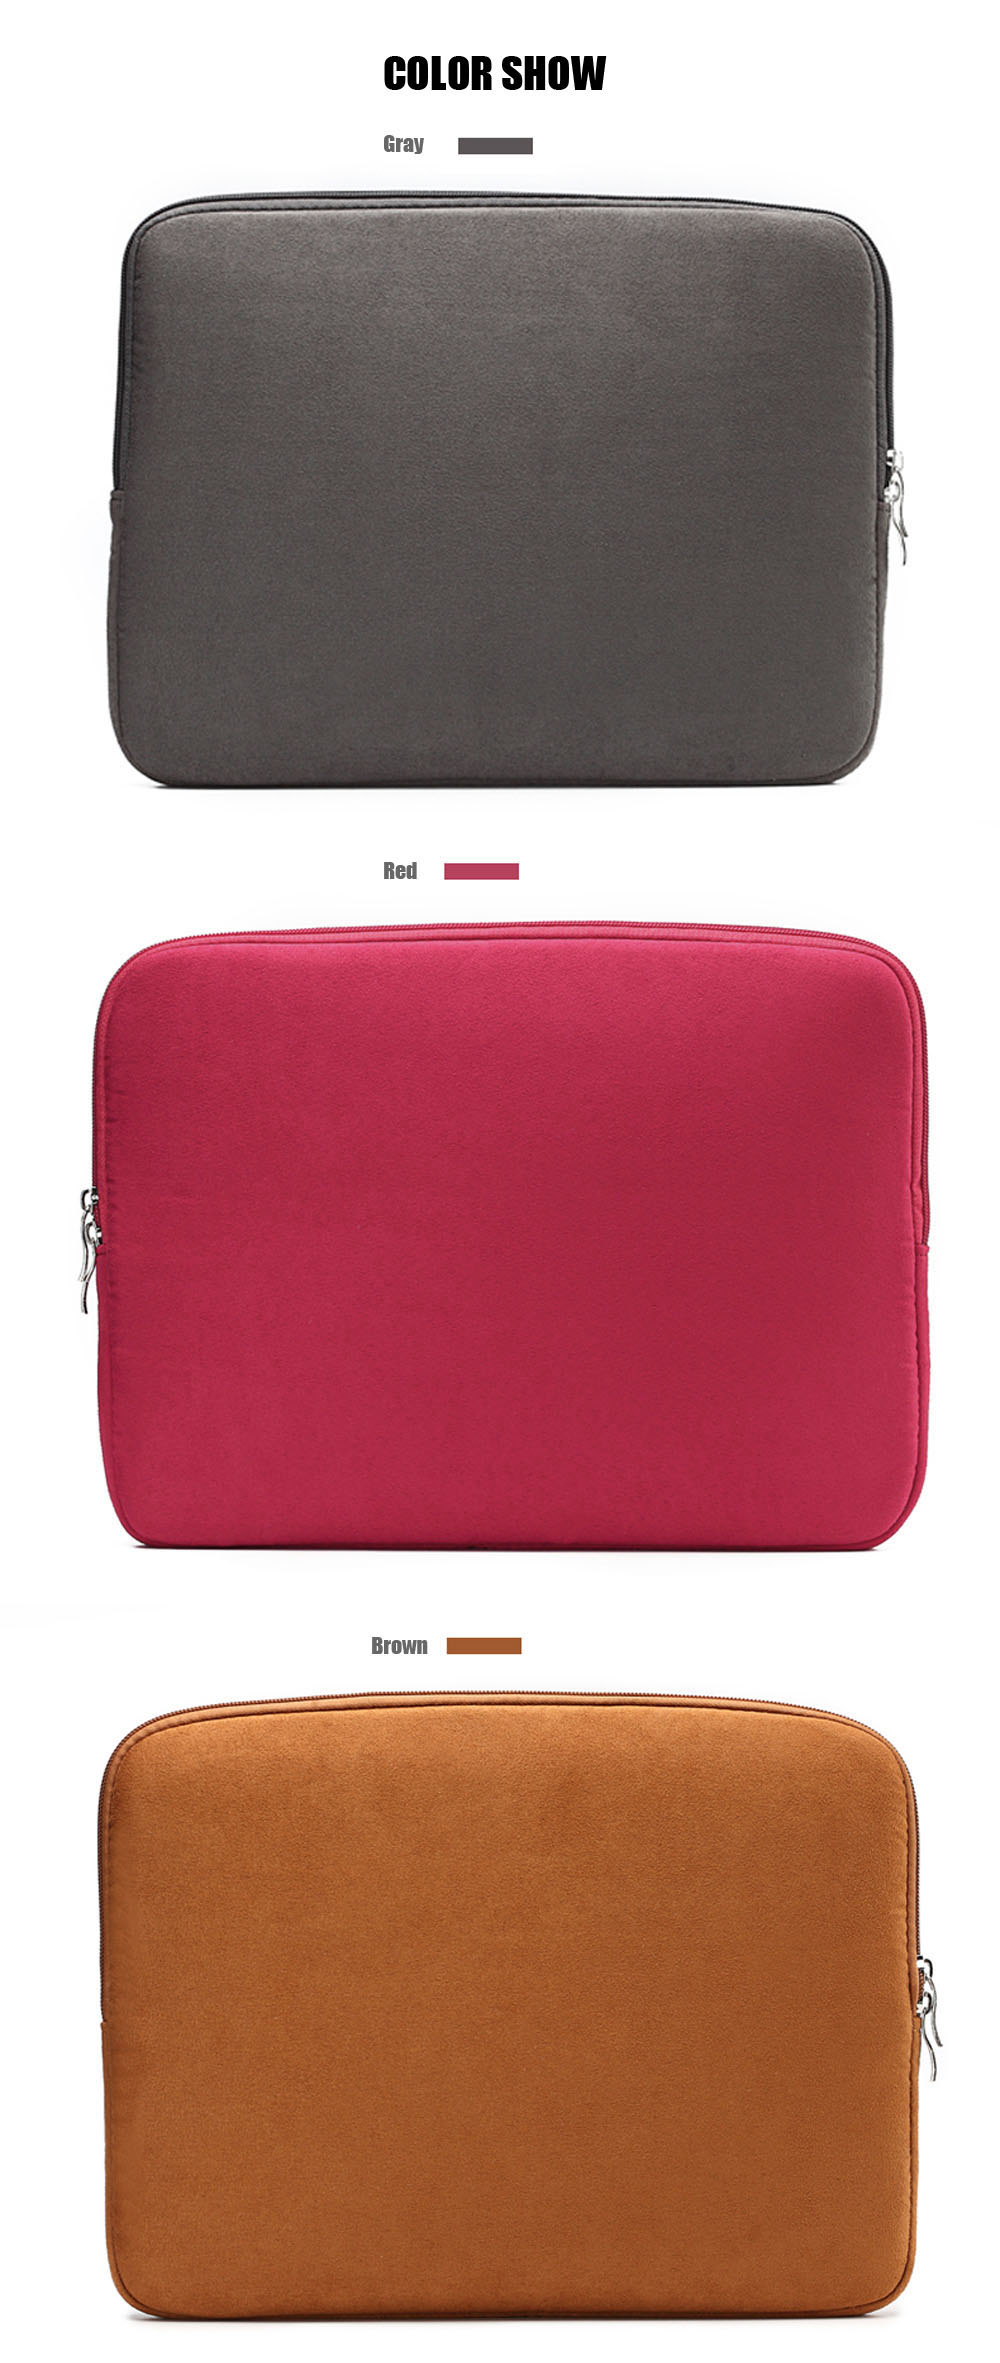 13 inch Laptop Sleeve Bag Protective  Pouch for MacBook Air / Pro Retina